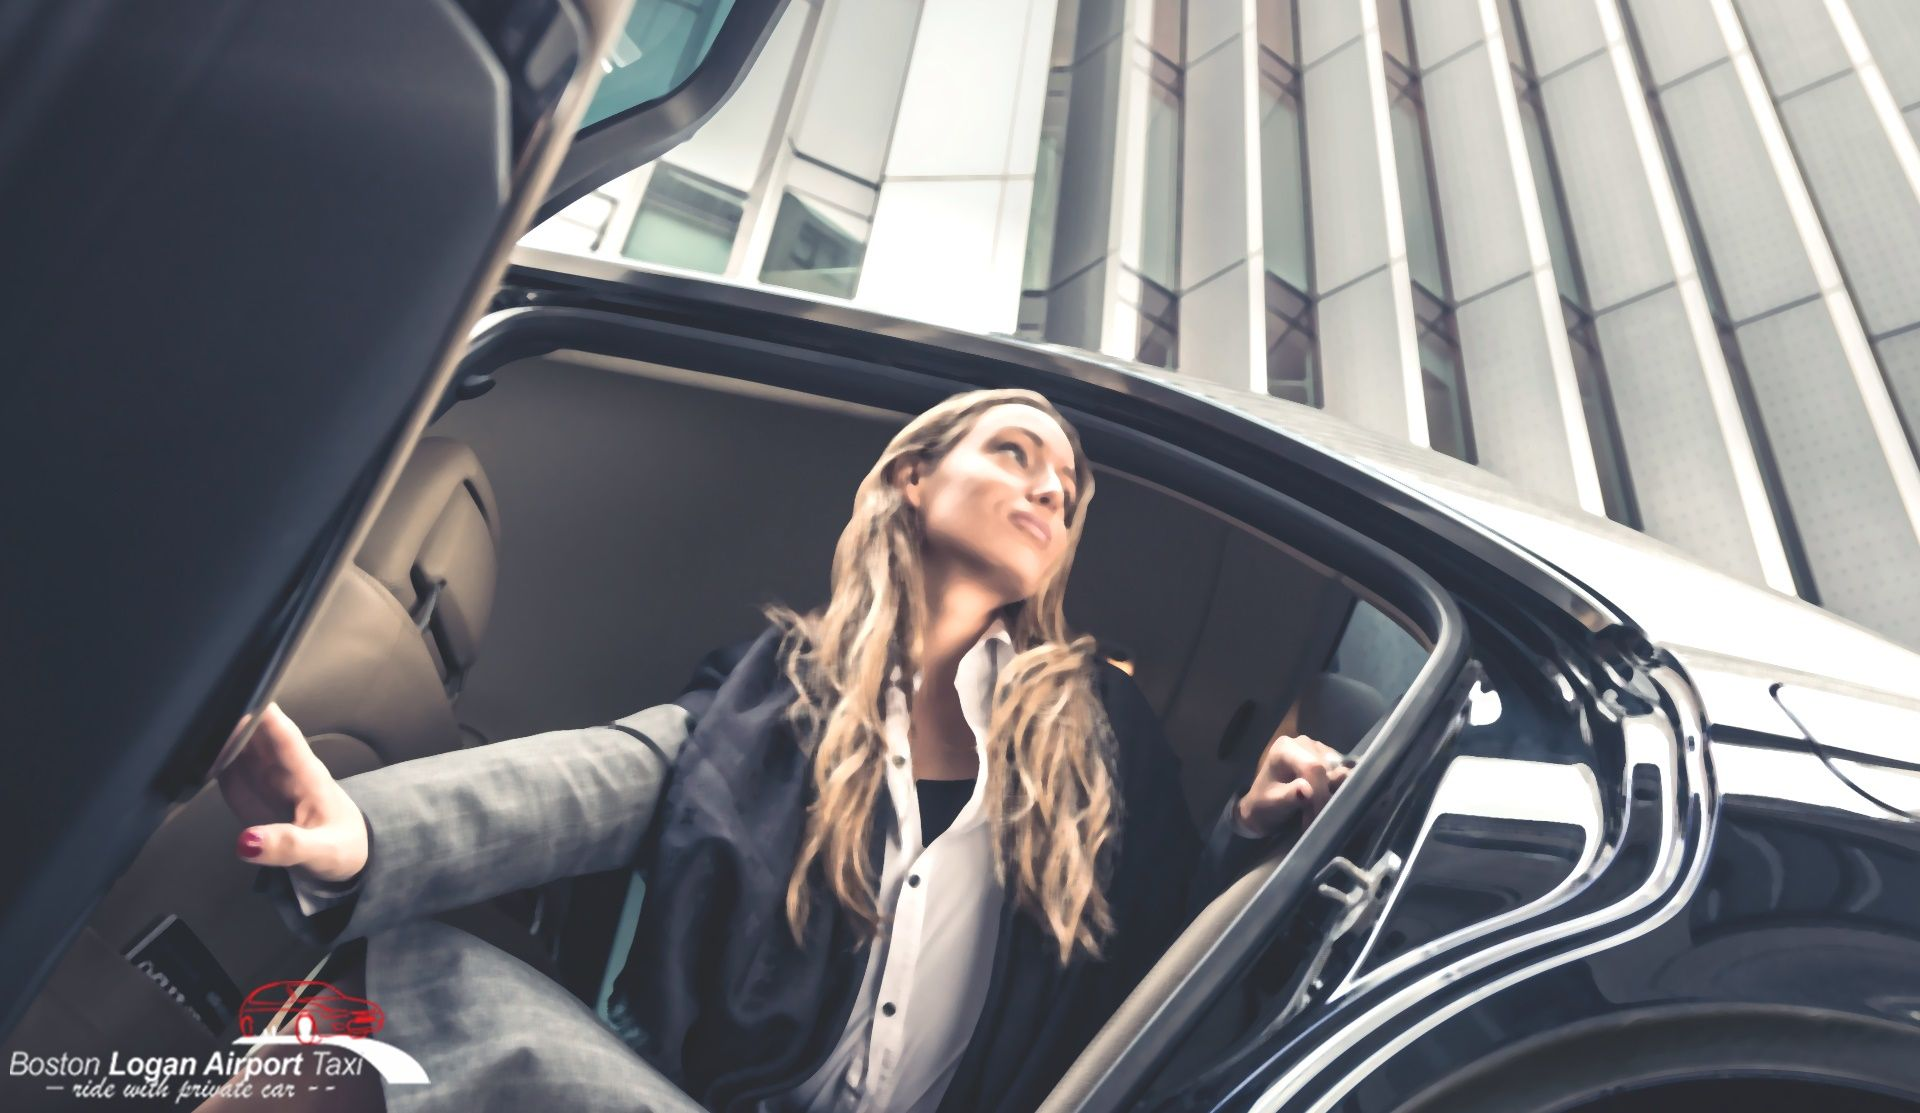 We are the most trusted BostonLoganairporttaxi service in